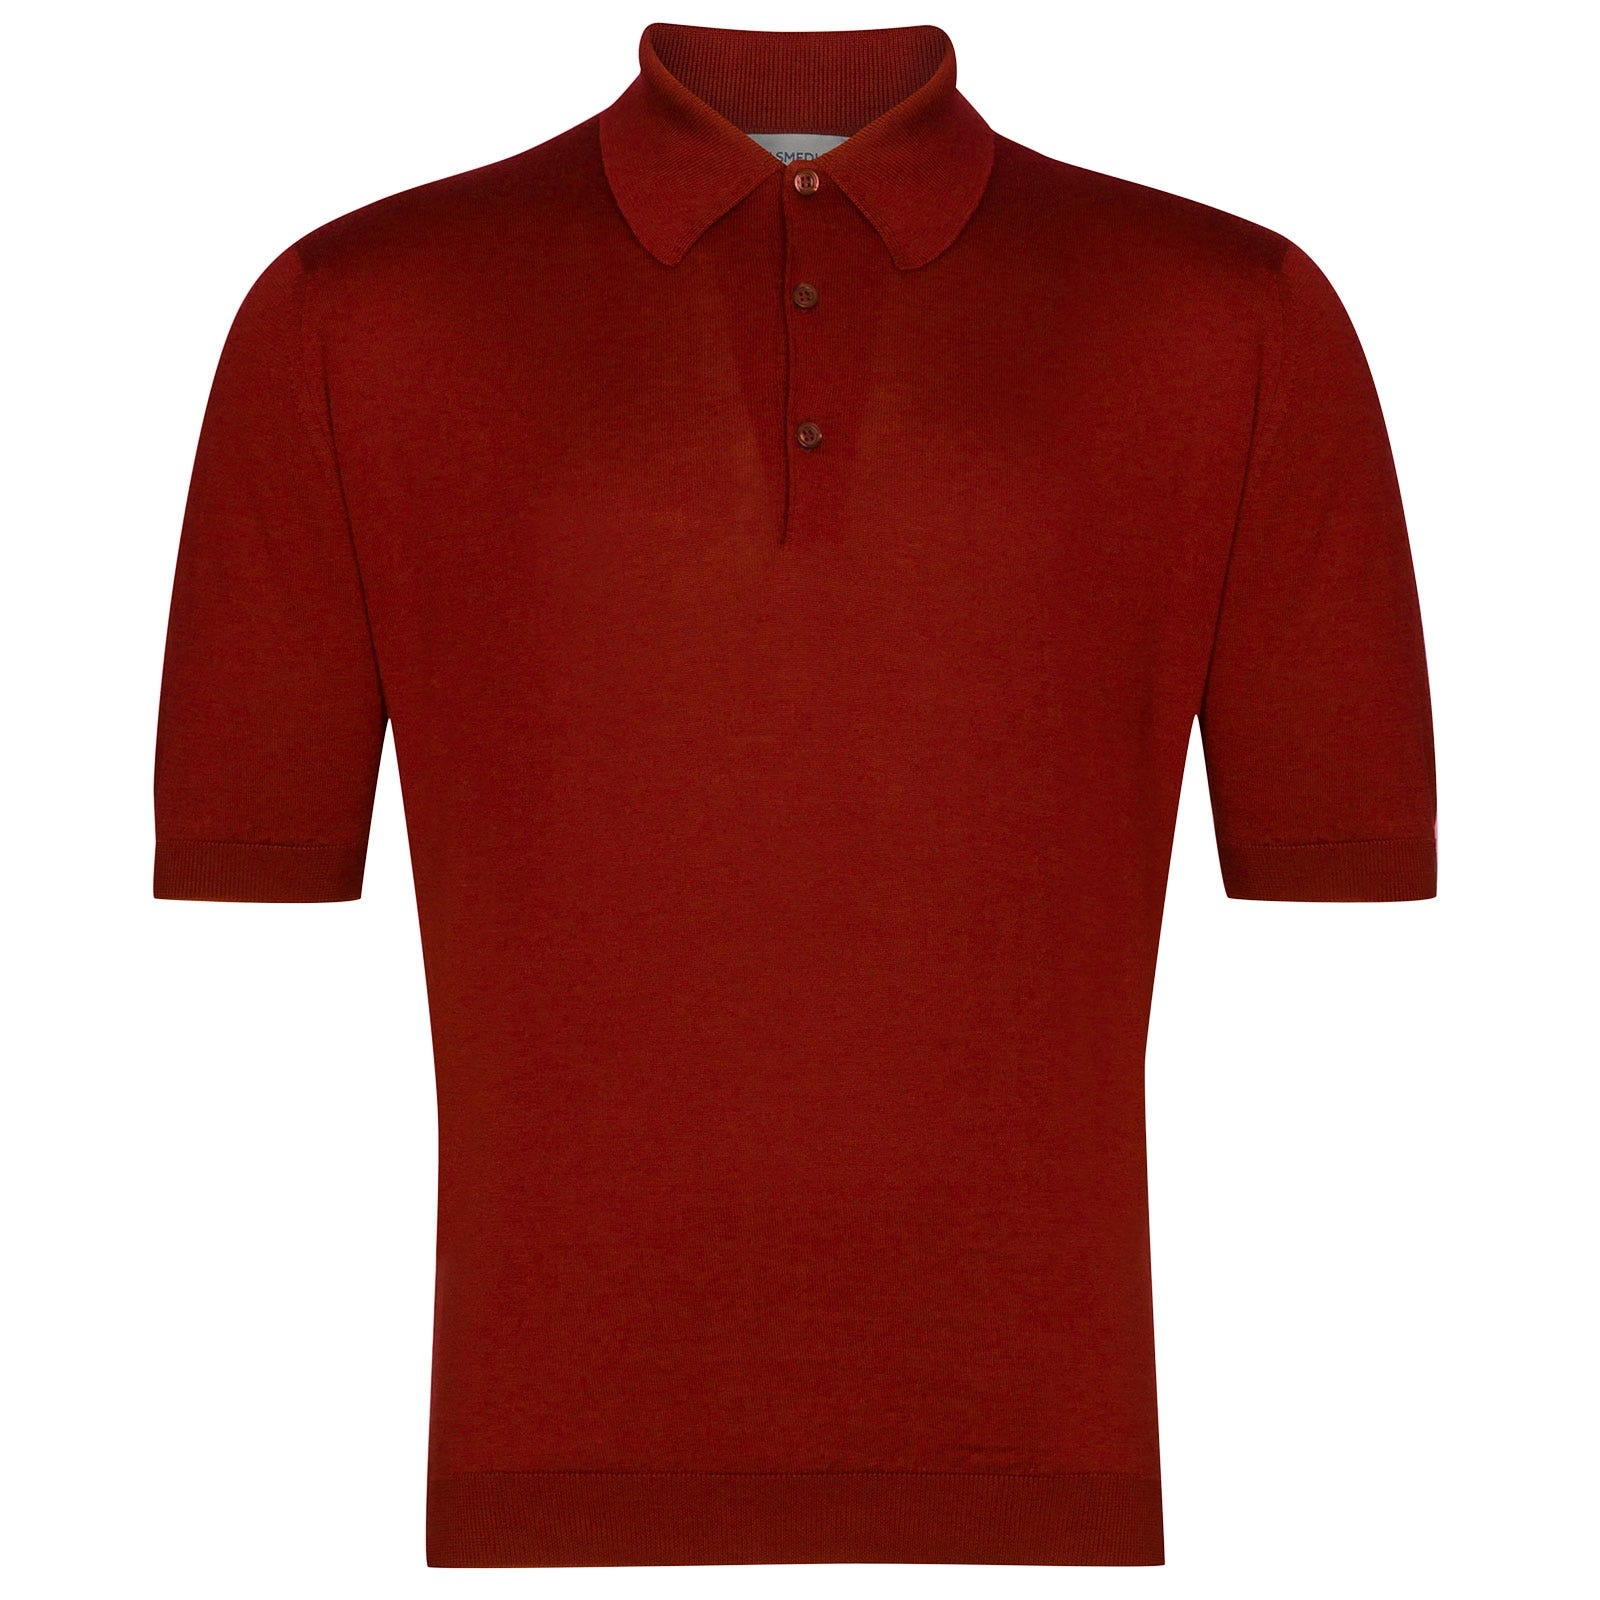 John Smedley Isis Sea Island Cotton Shirt in Thermal Red-XL